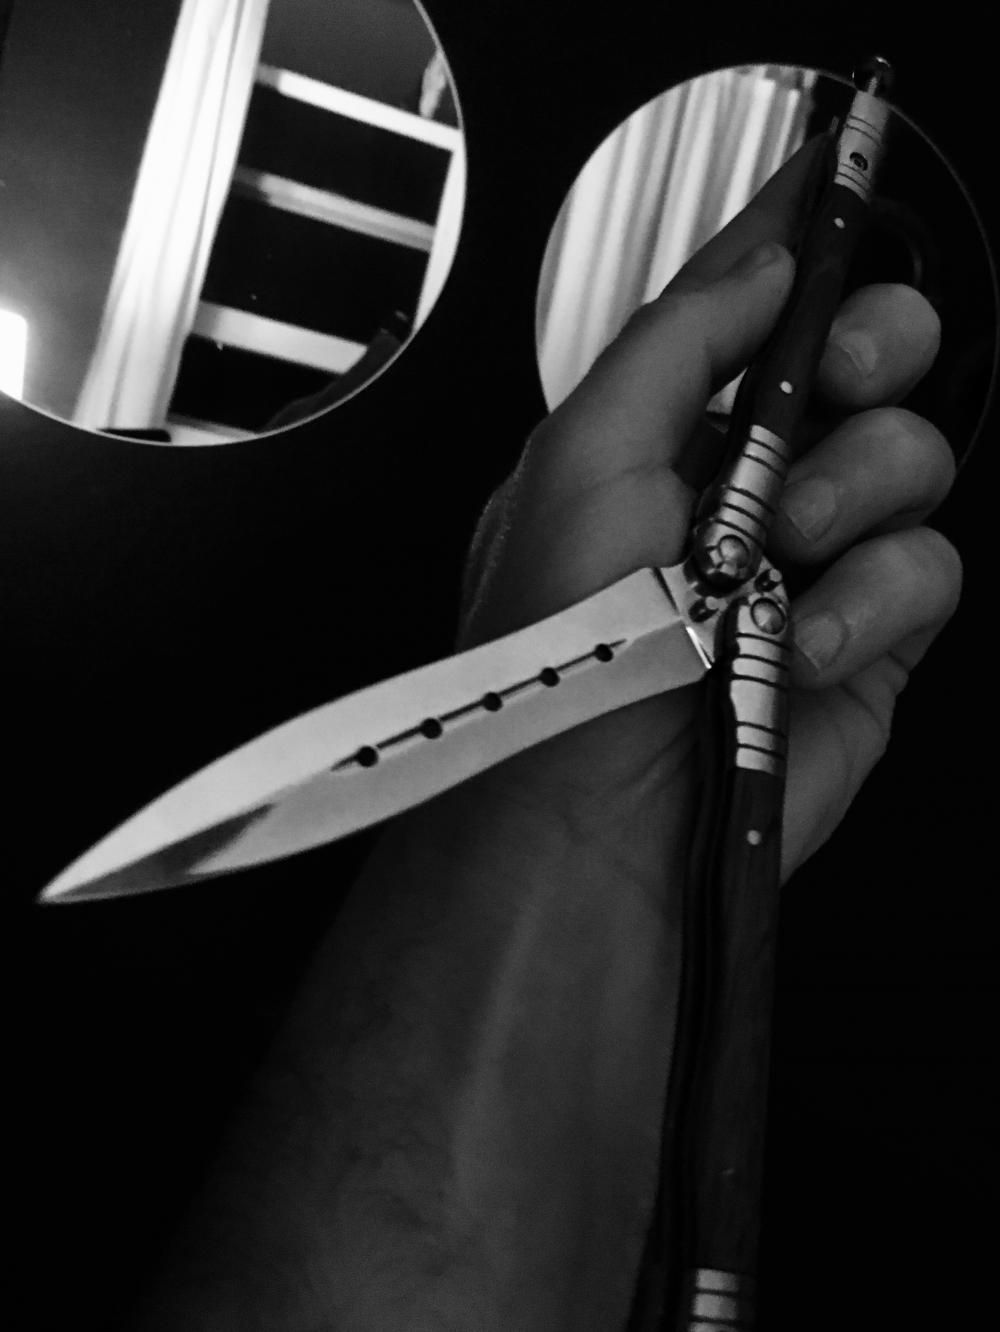 Black and white knife phootshoot 2